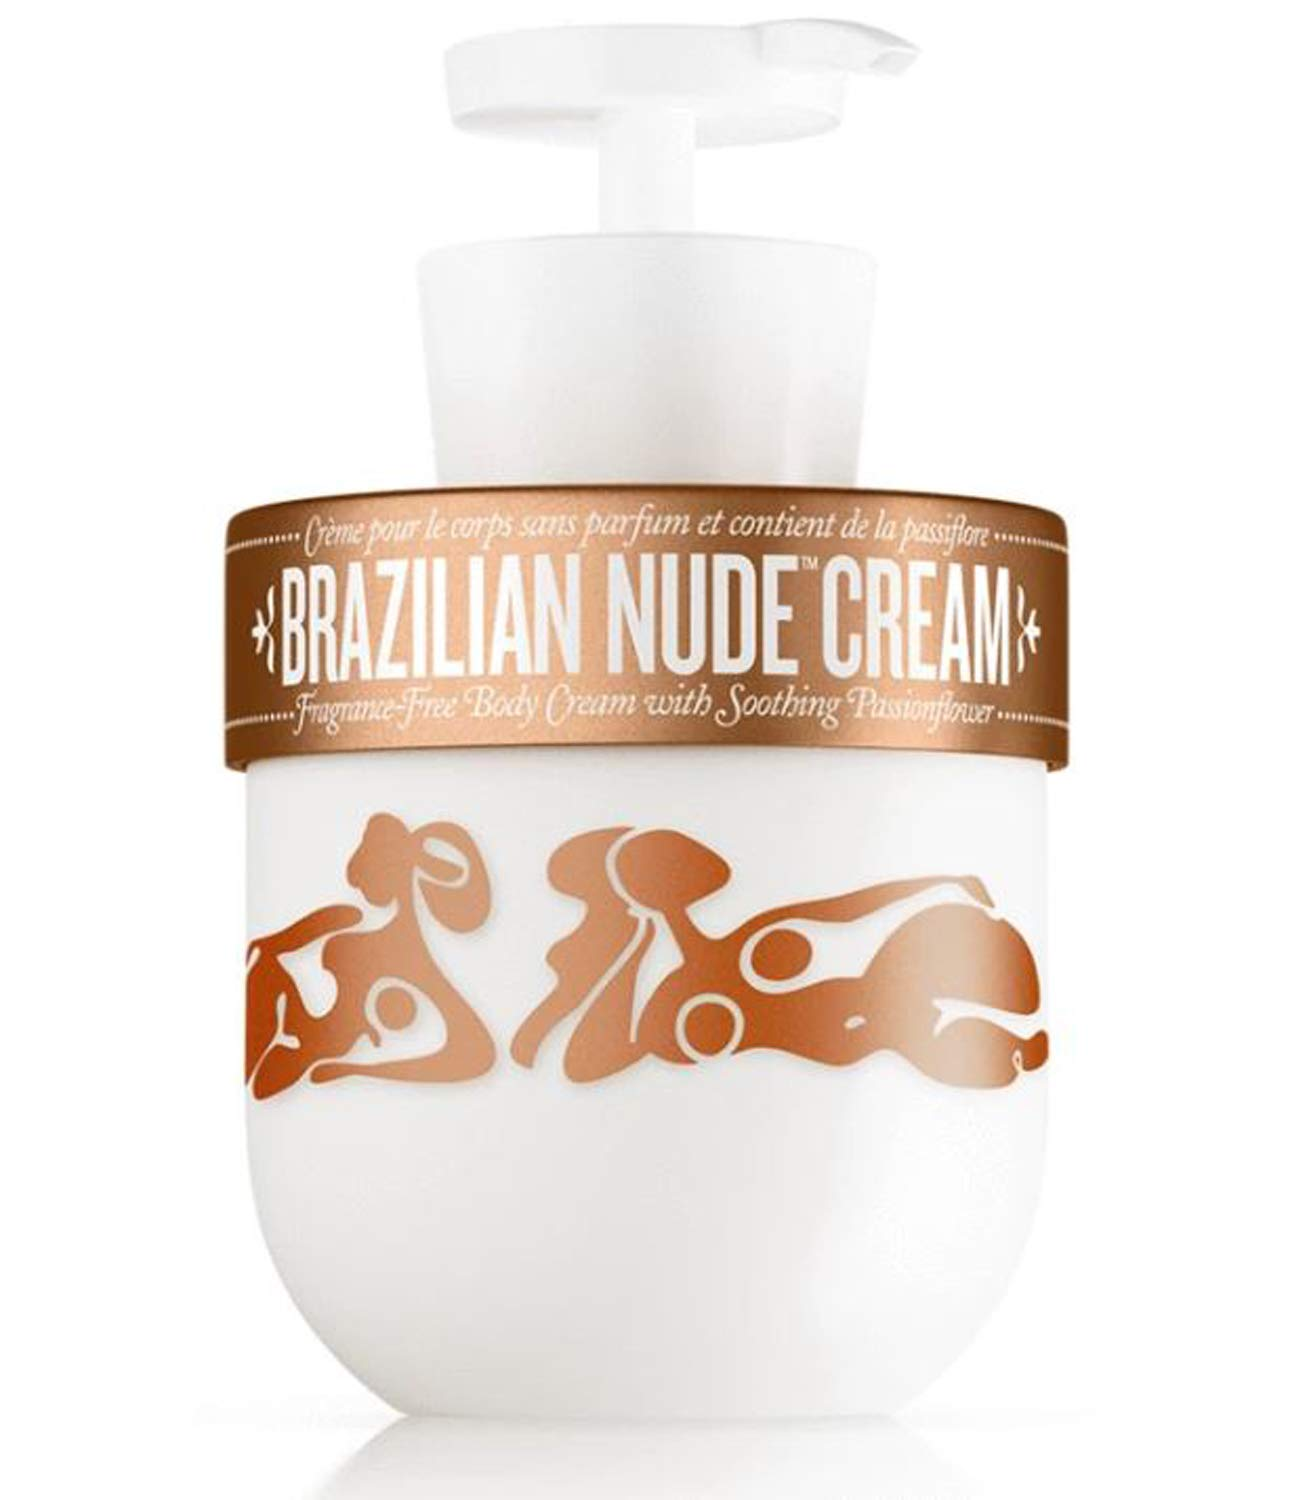 Sol De Janeiro Brazilian Nude Cream 13 Oz! Fragrance Free Body Cream With Soothing Passionflower! Creamy Soft Daily Body Moisturizer! Nourish And Gently Soothed Skin!